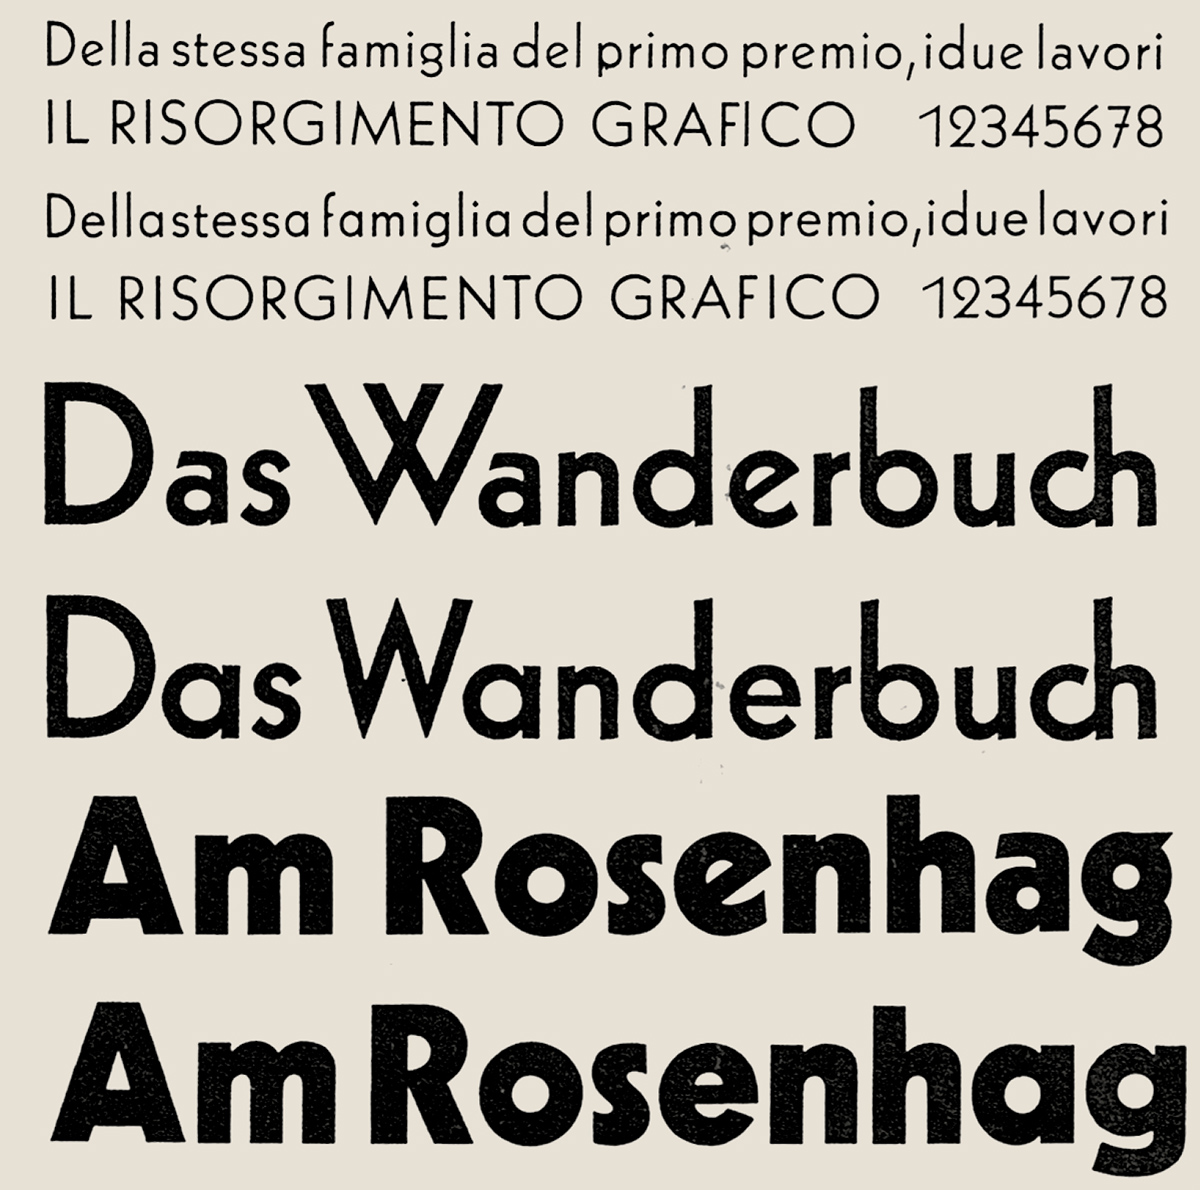 **First redesign.** Due to the assumption that some of Kabel's key characters _(W, a, e, g)_ were an obstacle to the typeface's success, Klingspor released _Neu-Kabel_ with several alternate letters. This overview shows a comparison made by Walter Tracy between Kabel light, medium and bold and the respective weights in Neu-Kabel. (Walter Tracy: _Letters of credit. A view of type design,_ London 1986, p. 171, from the collection of Toshiya Izumo)